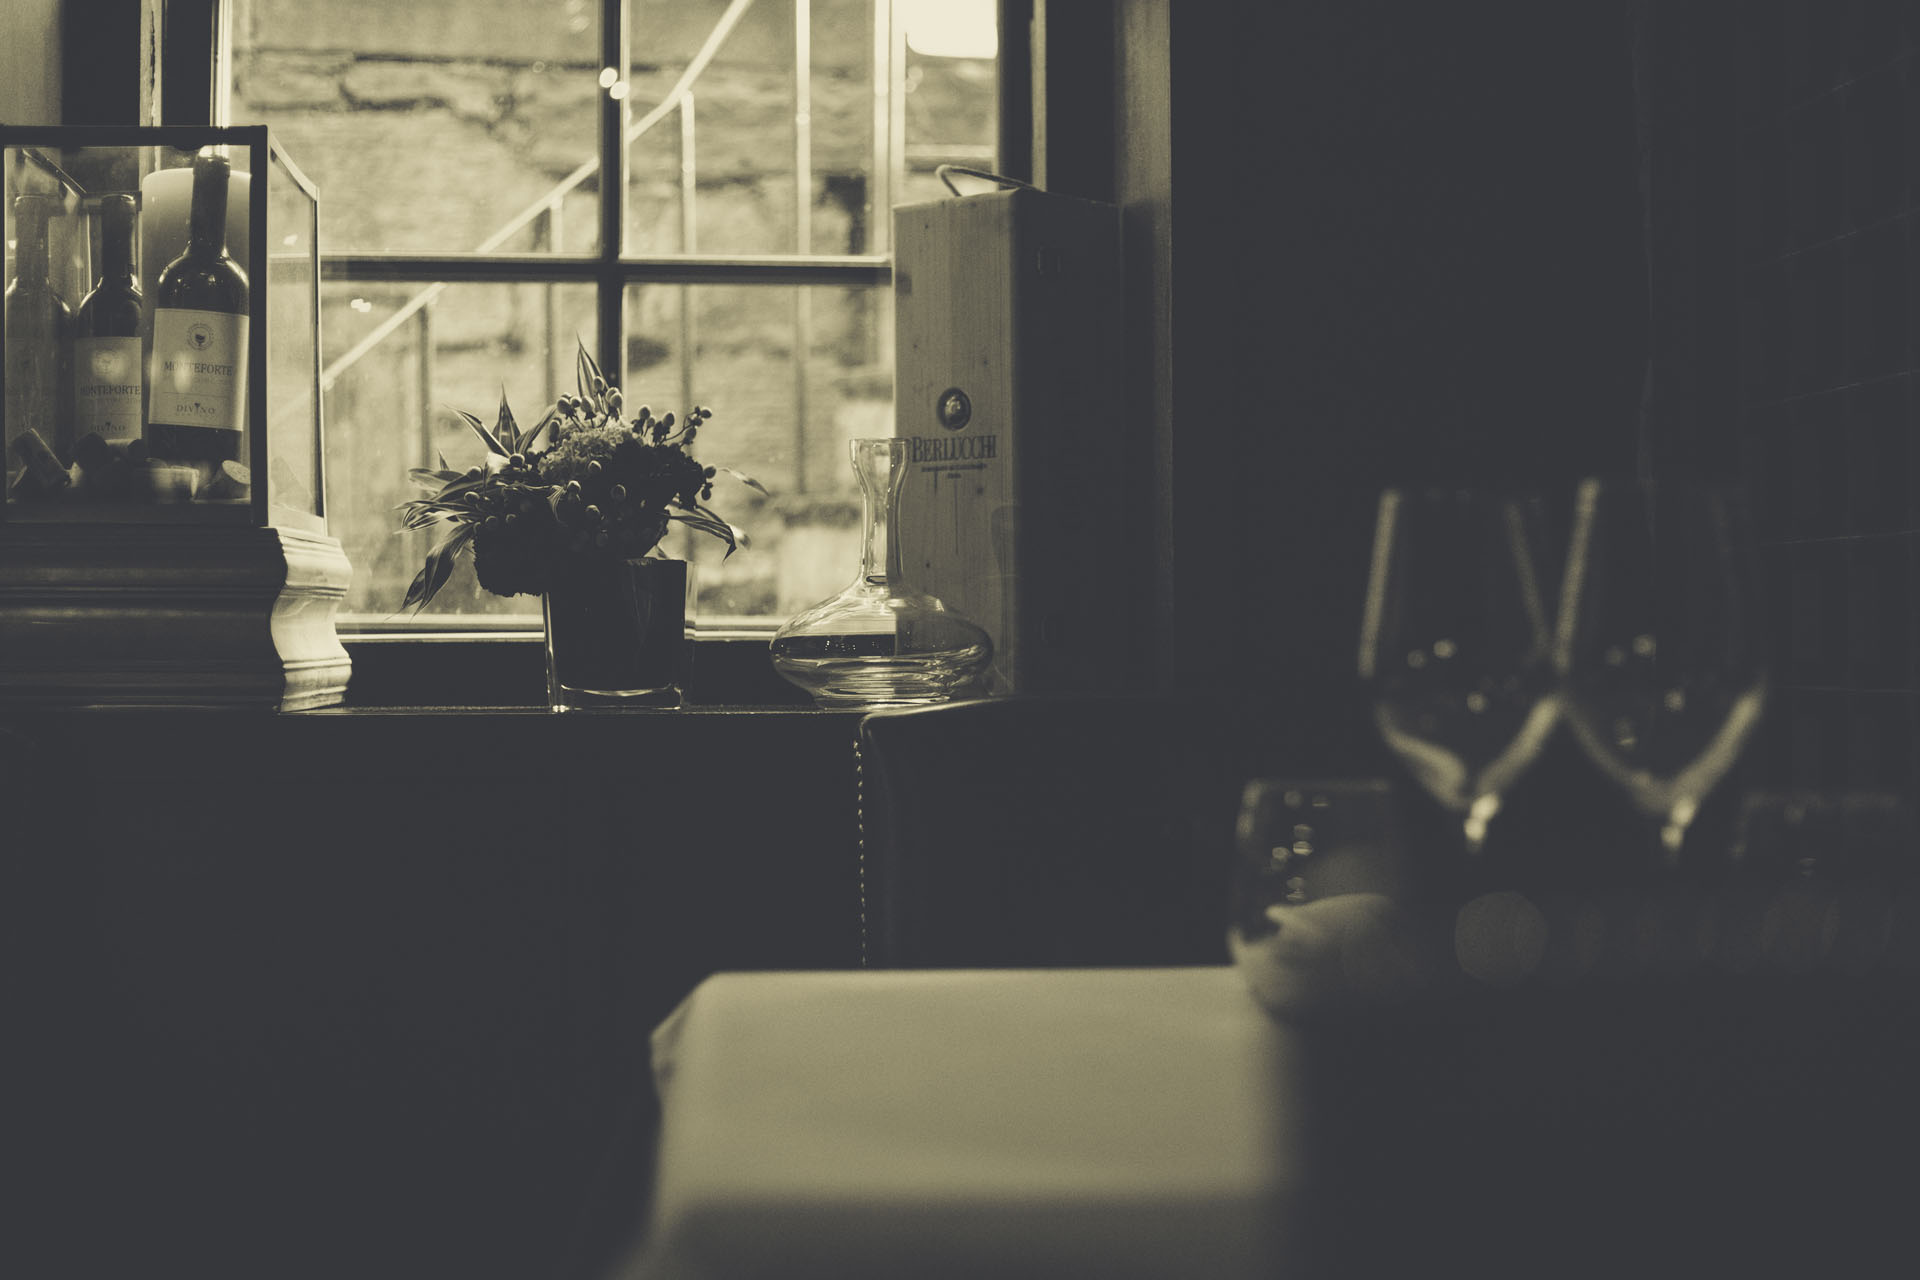 The Restaurant Photographer | Make a Great First Impression